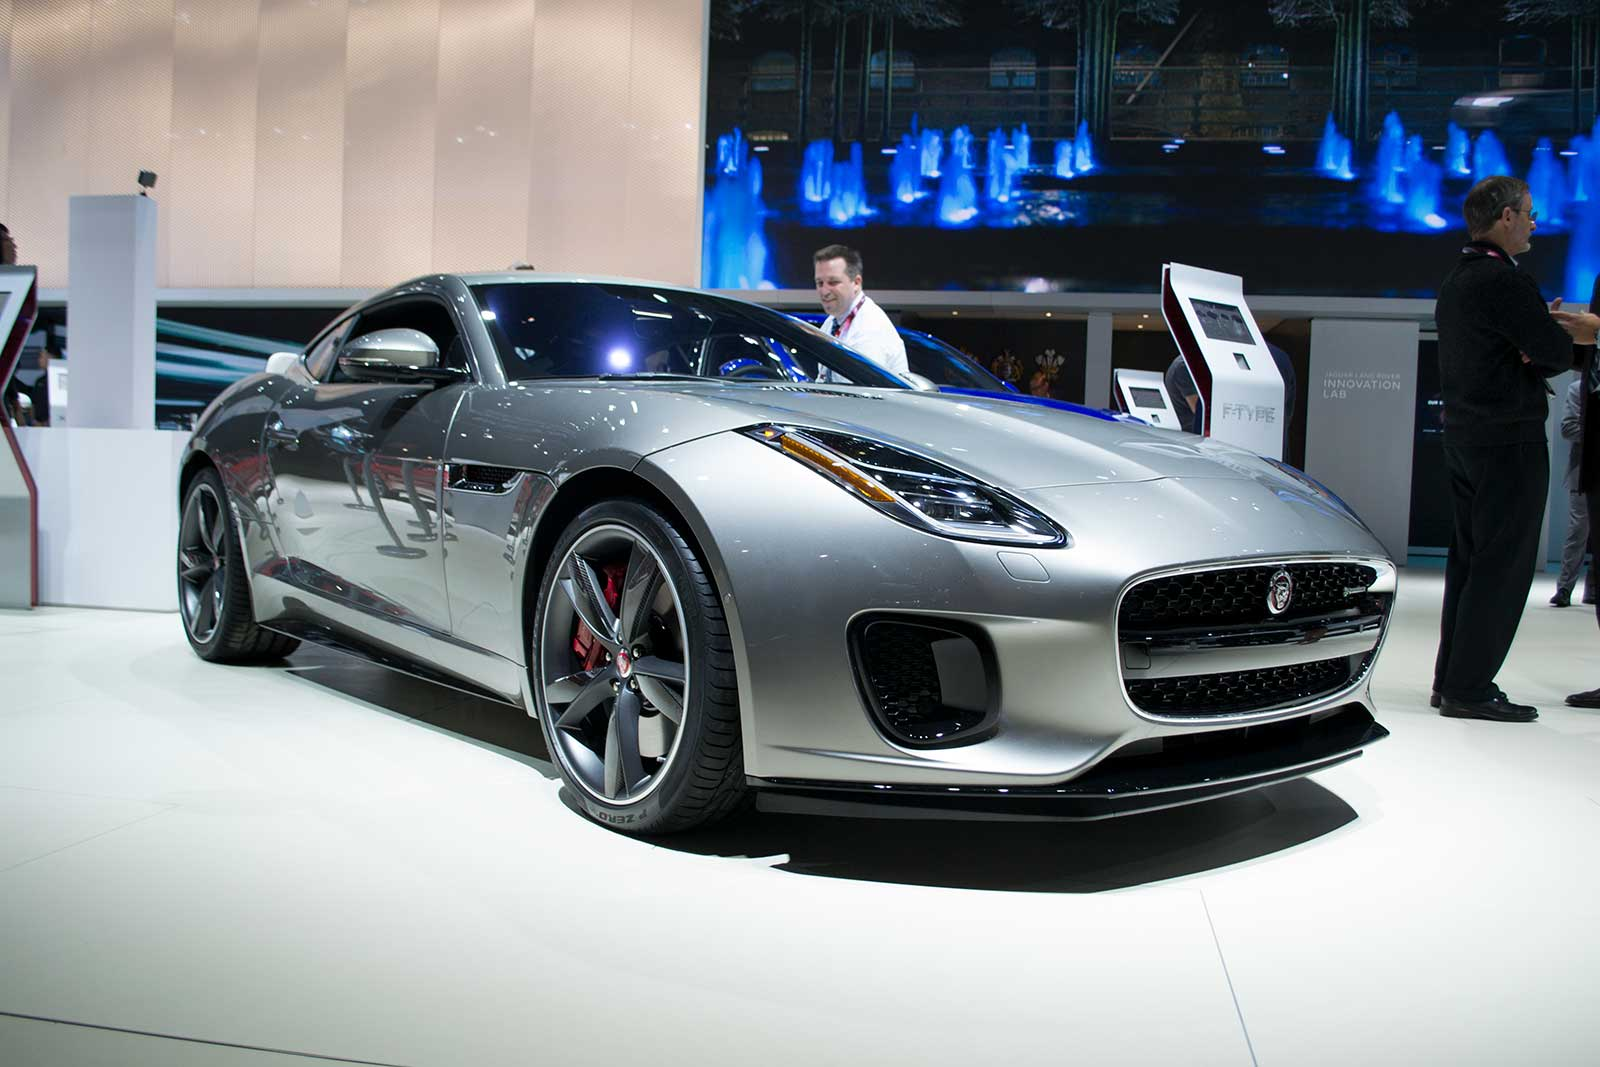 2017 Jaguar Lineup >> 2018 Jaguar F-Type Gets New Base 4-Cylinder Engine, Cheaper Entry Price » AutoGuide.com News